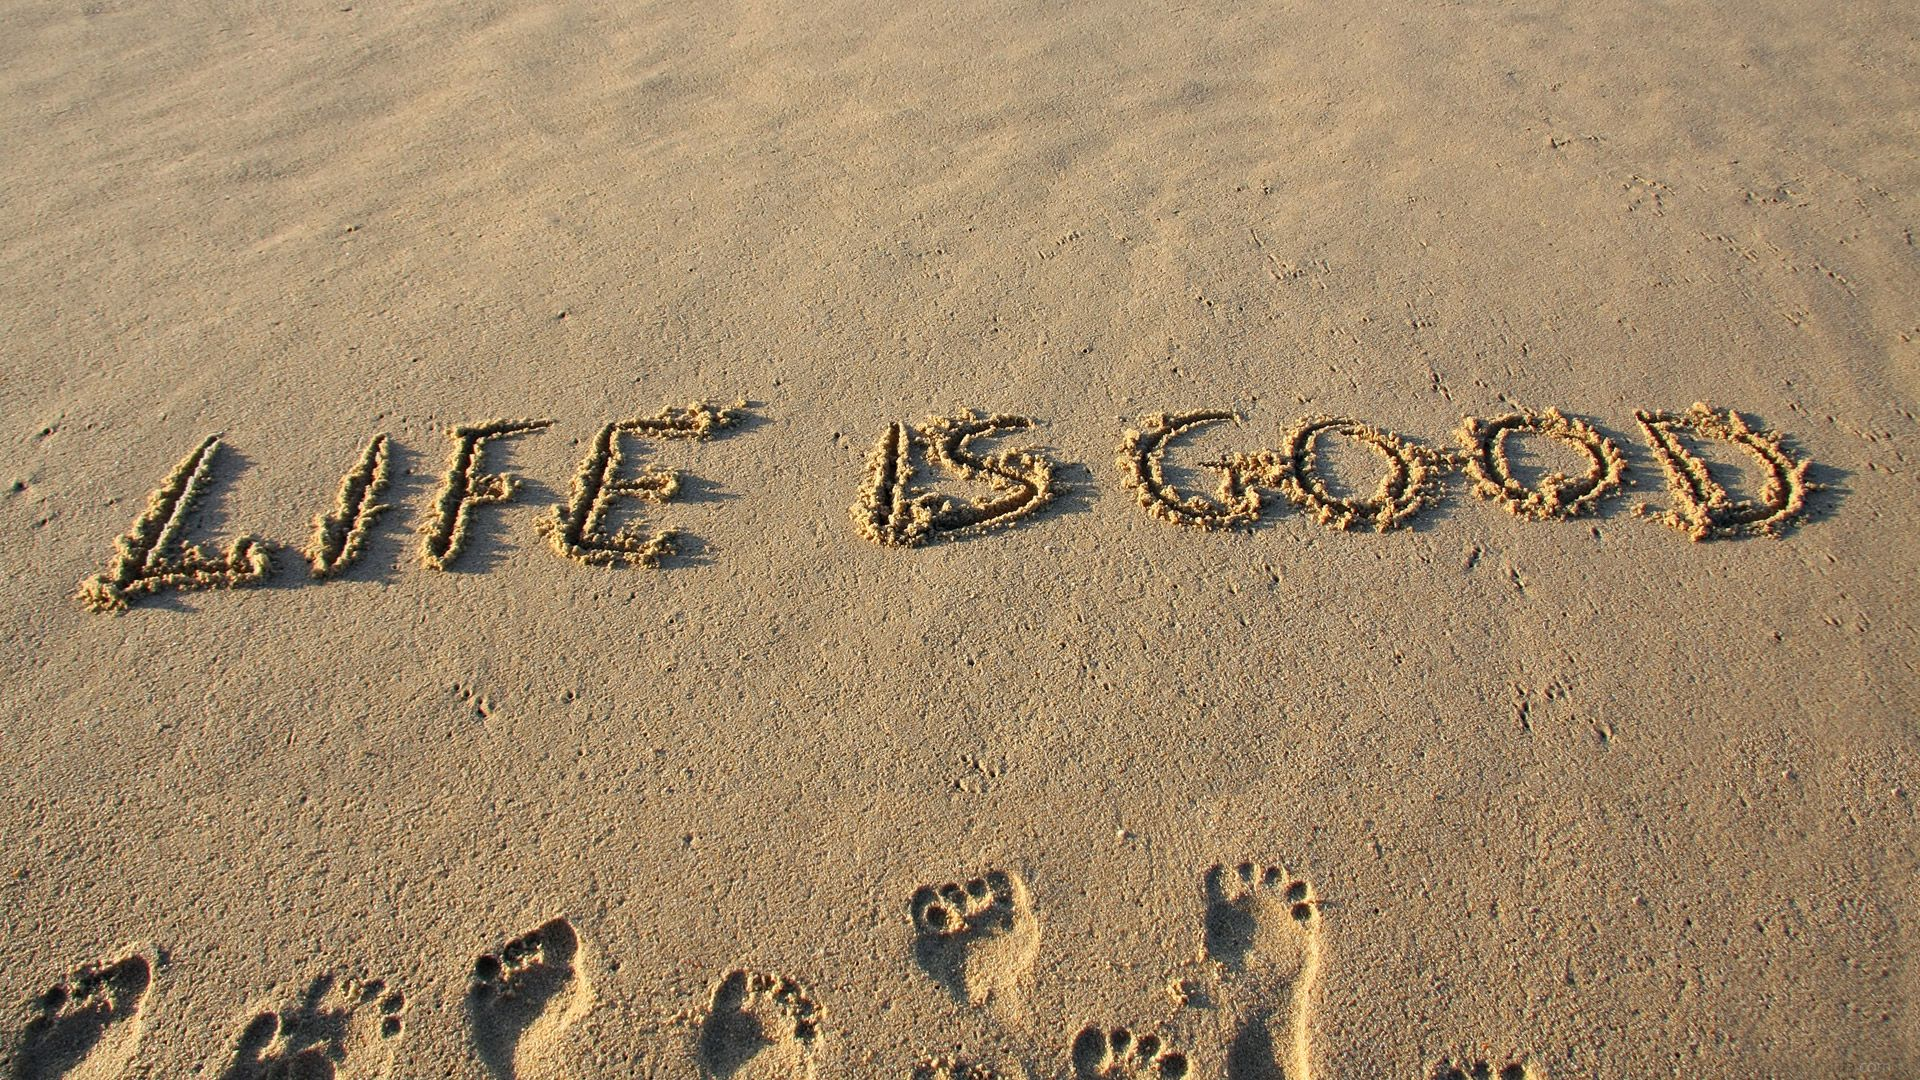 Perfect Life Is Good Quotes | Life Is Good Motivational Wallpaper